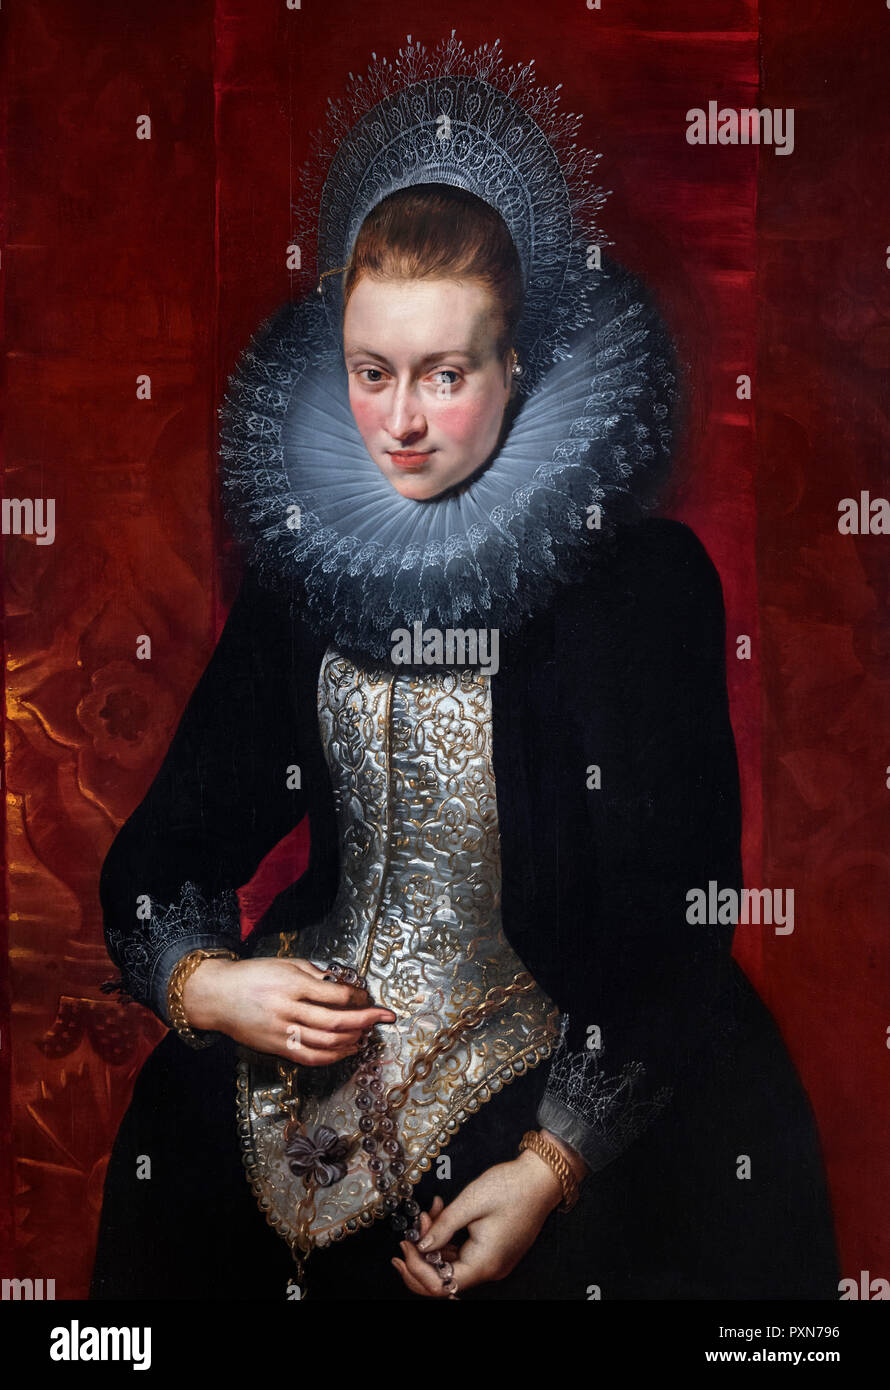 Portrait of a Young Woman with a Rosary by Peter Paul Rubens (1577-1640), oil on wood, c.1609/10 - Stock Image